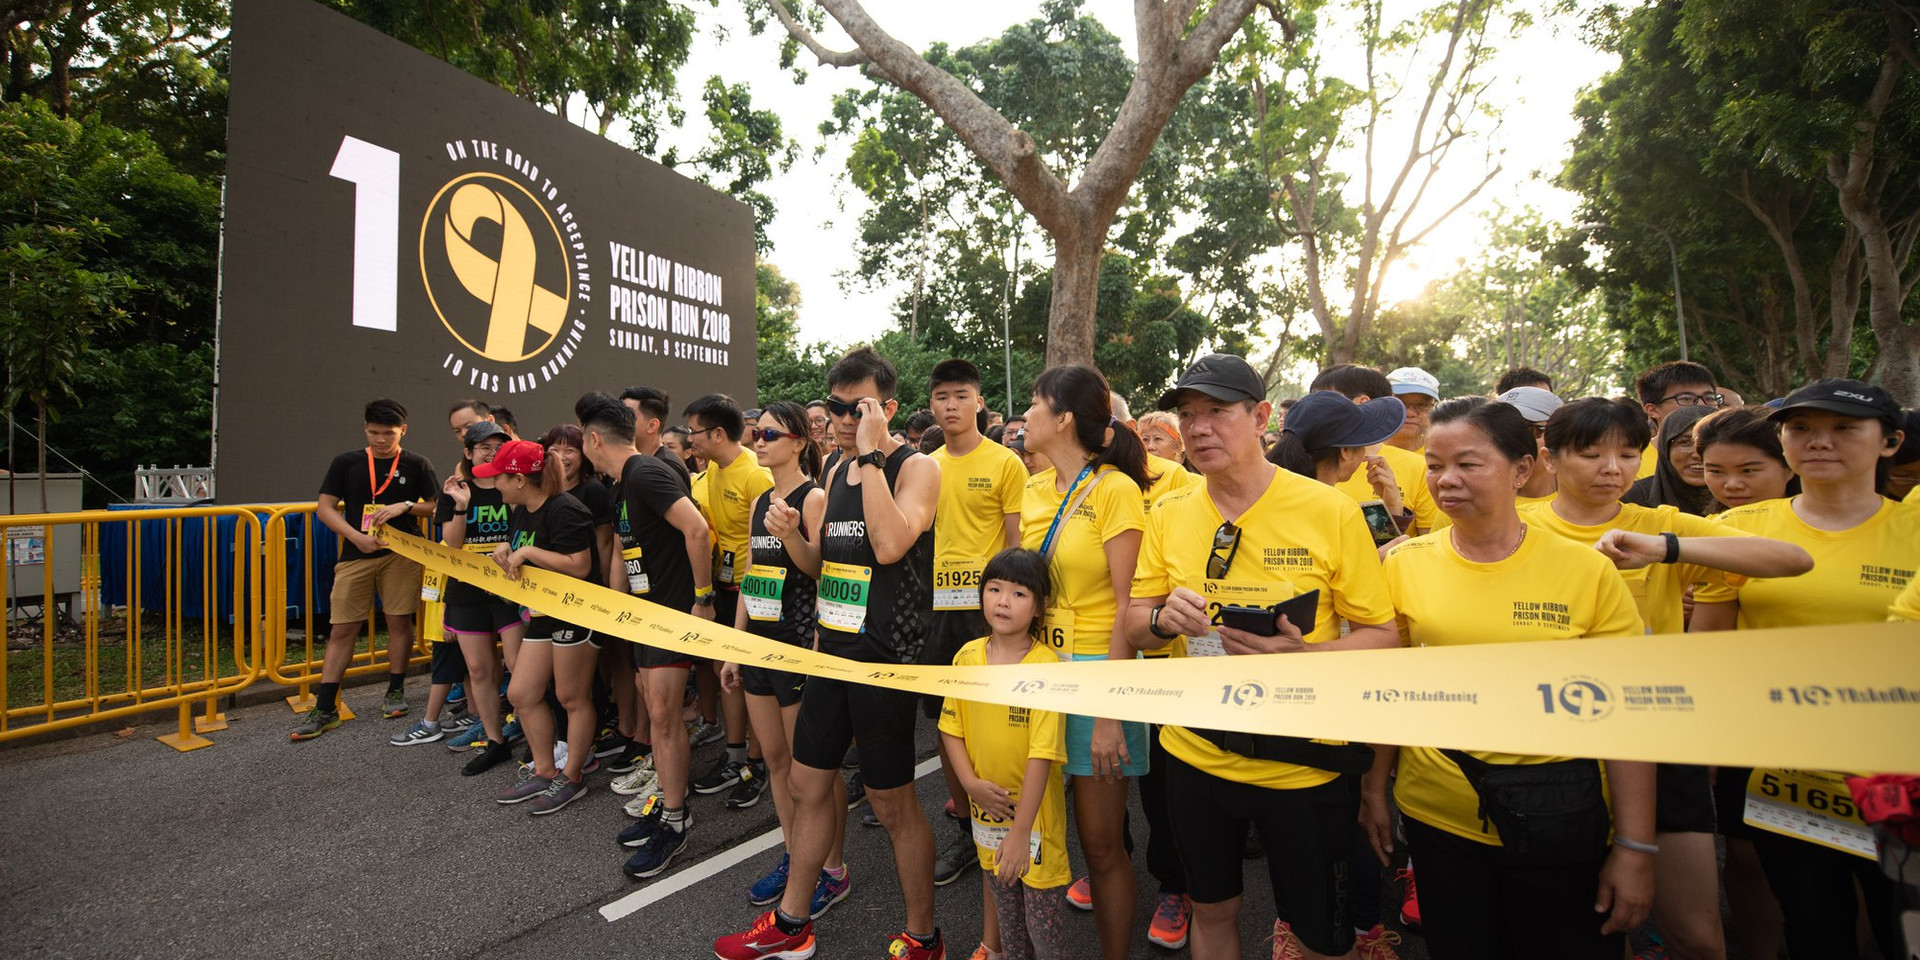 Yellow Ribbon Prison Run 2018